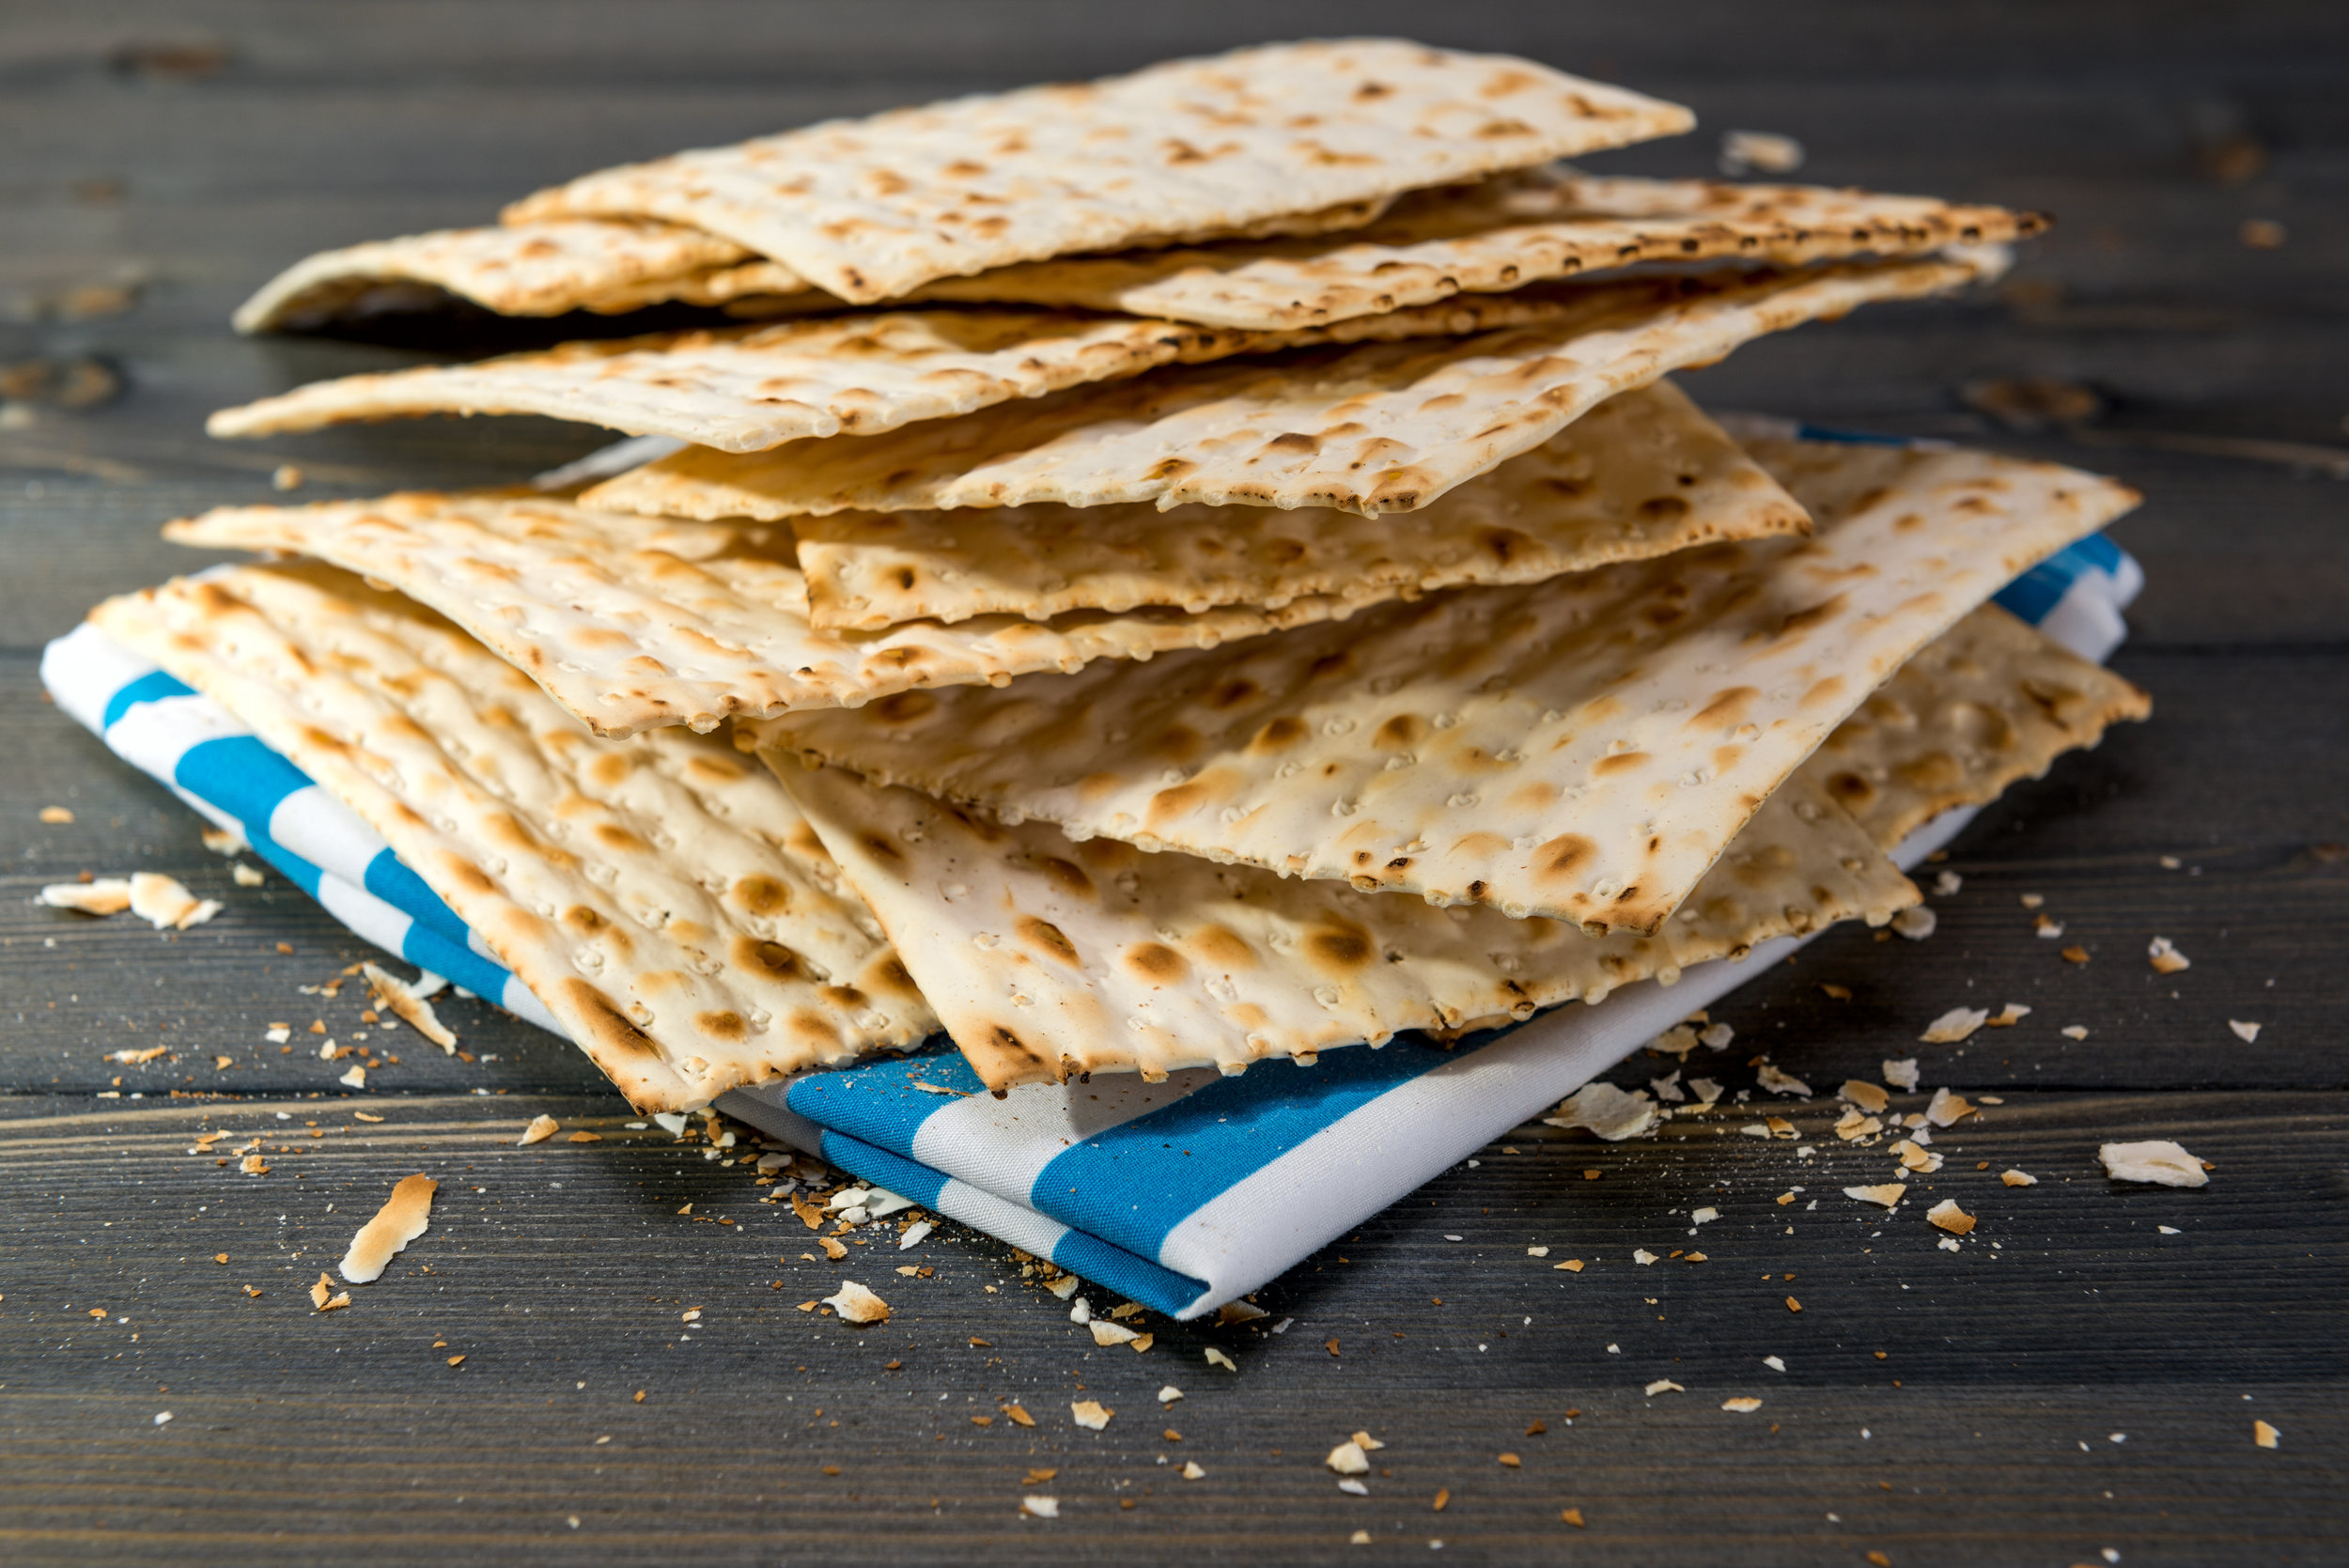 The matza, or unleavened bread